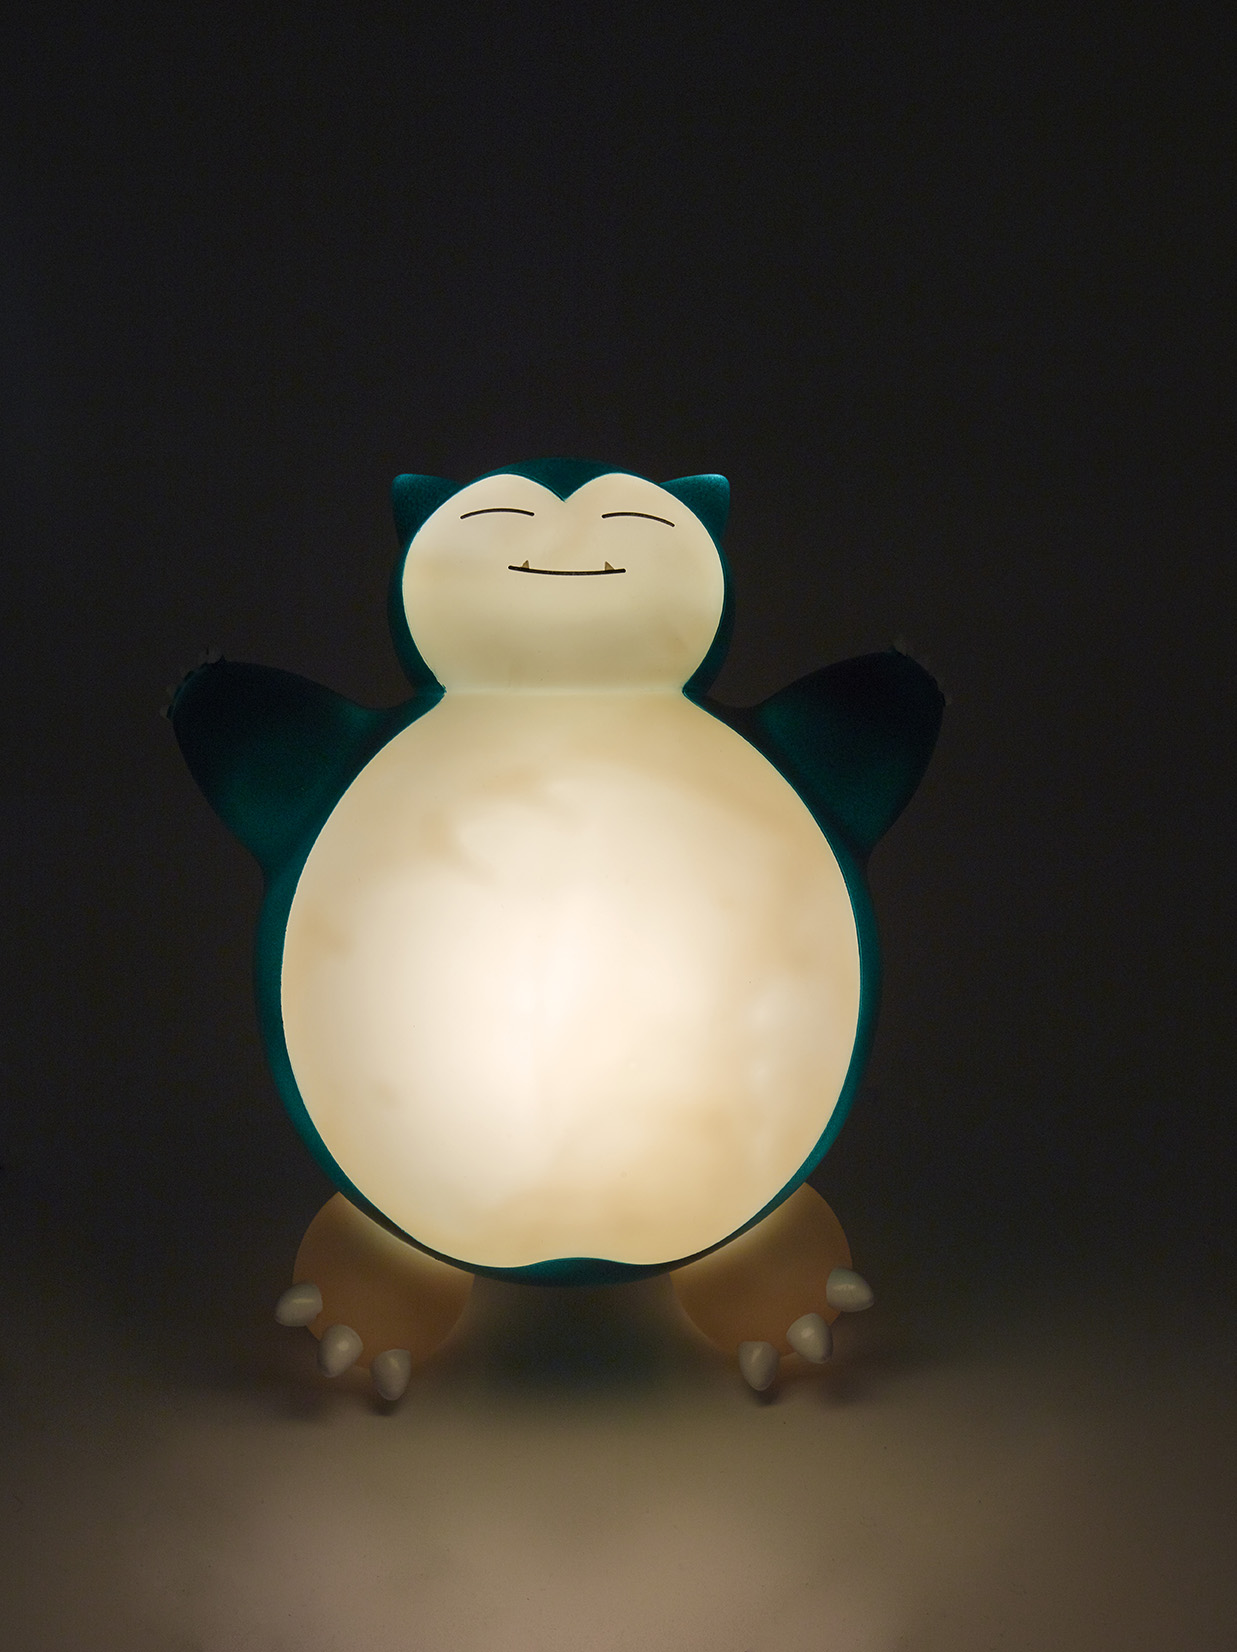 Pokémon snorlax led lamp night view